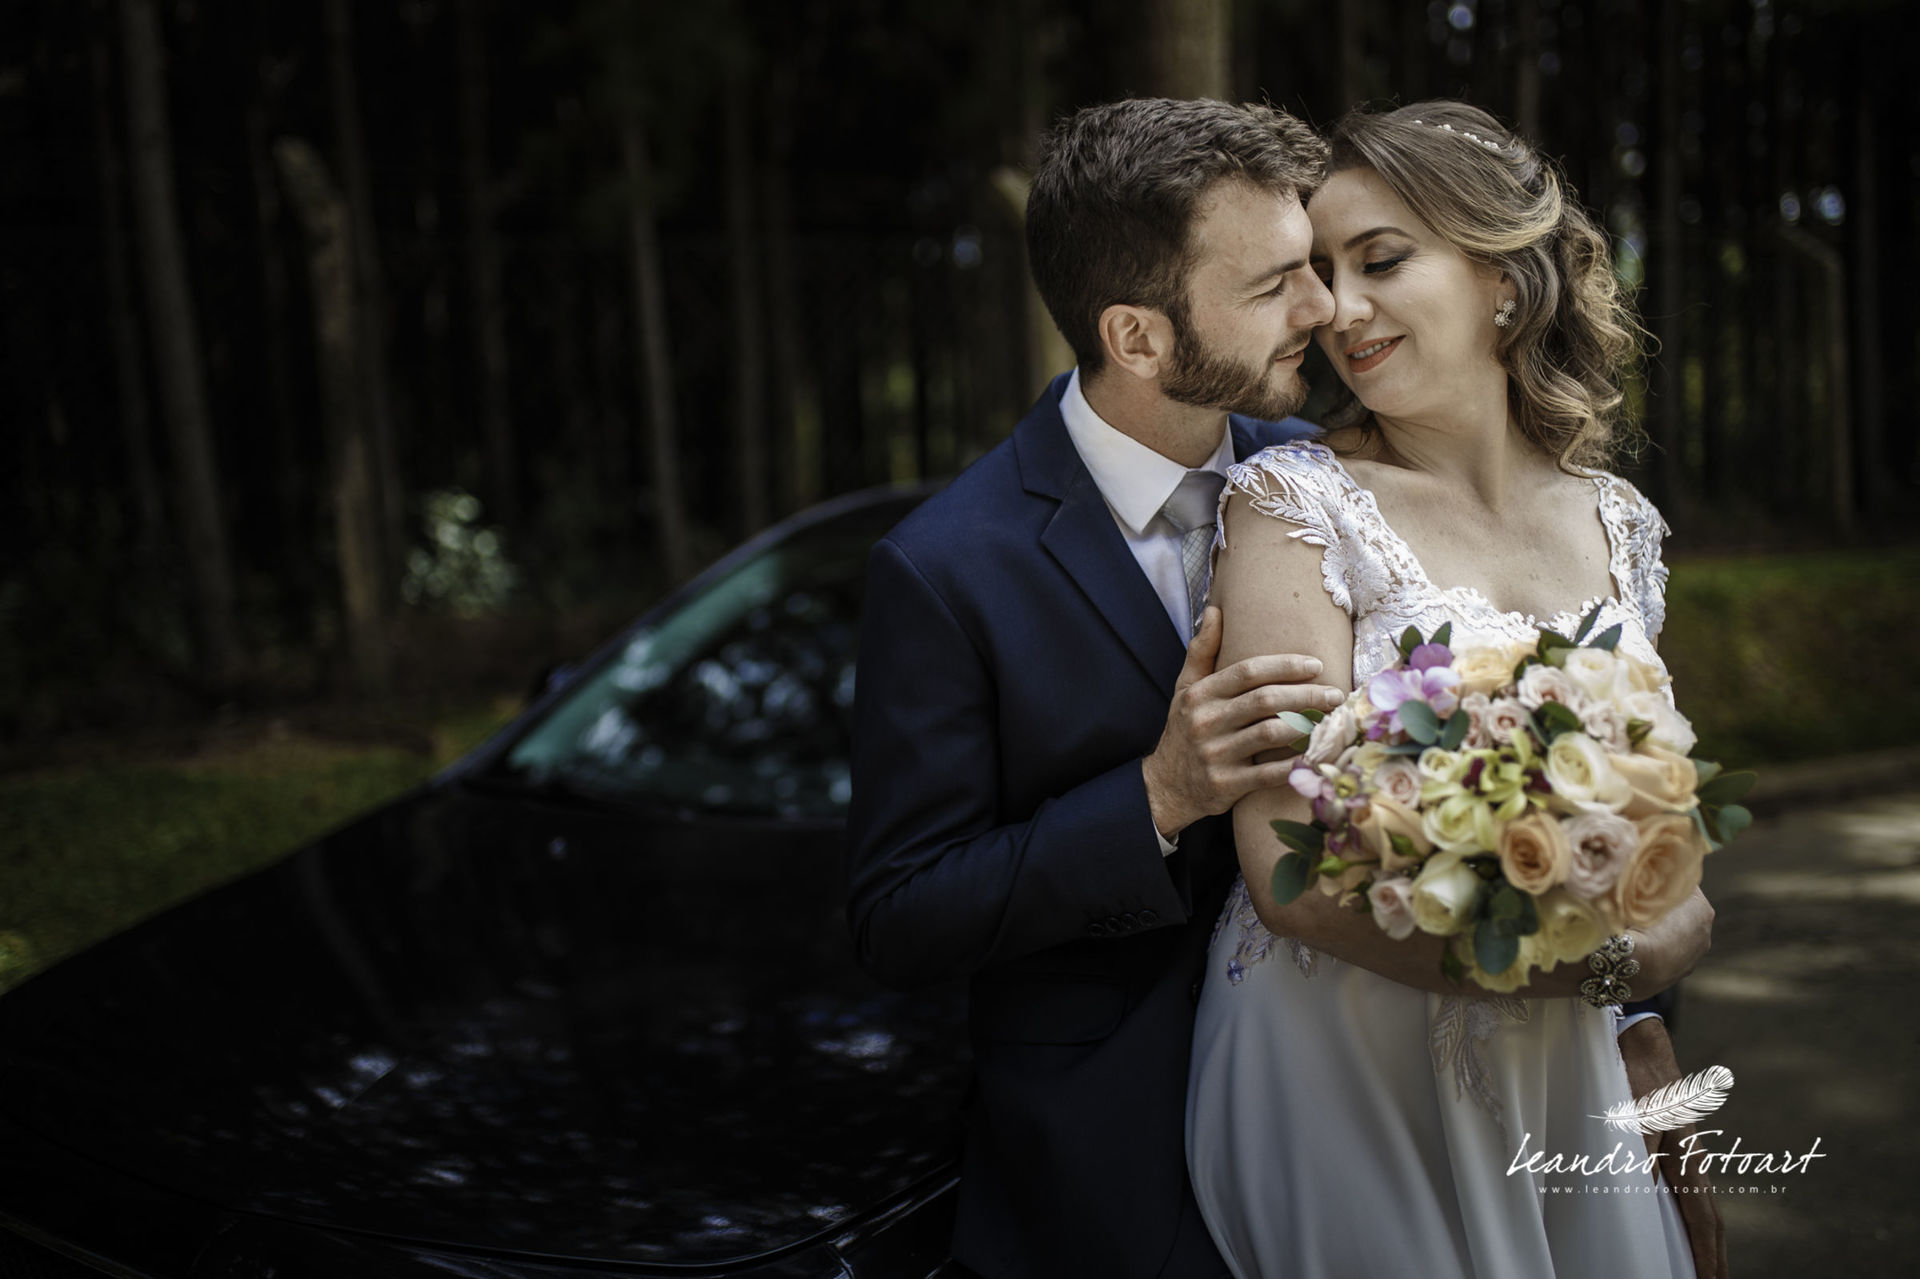 TÂNIA + DIOGO - WEDDING